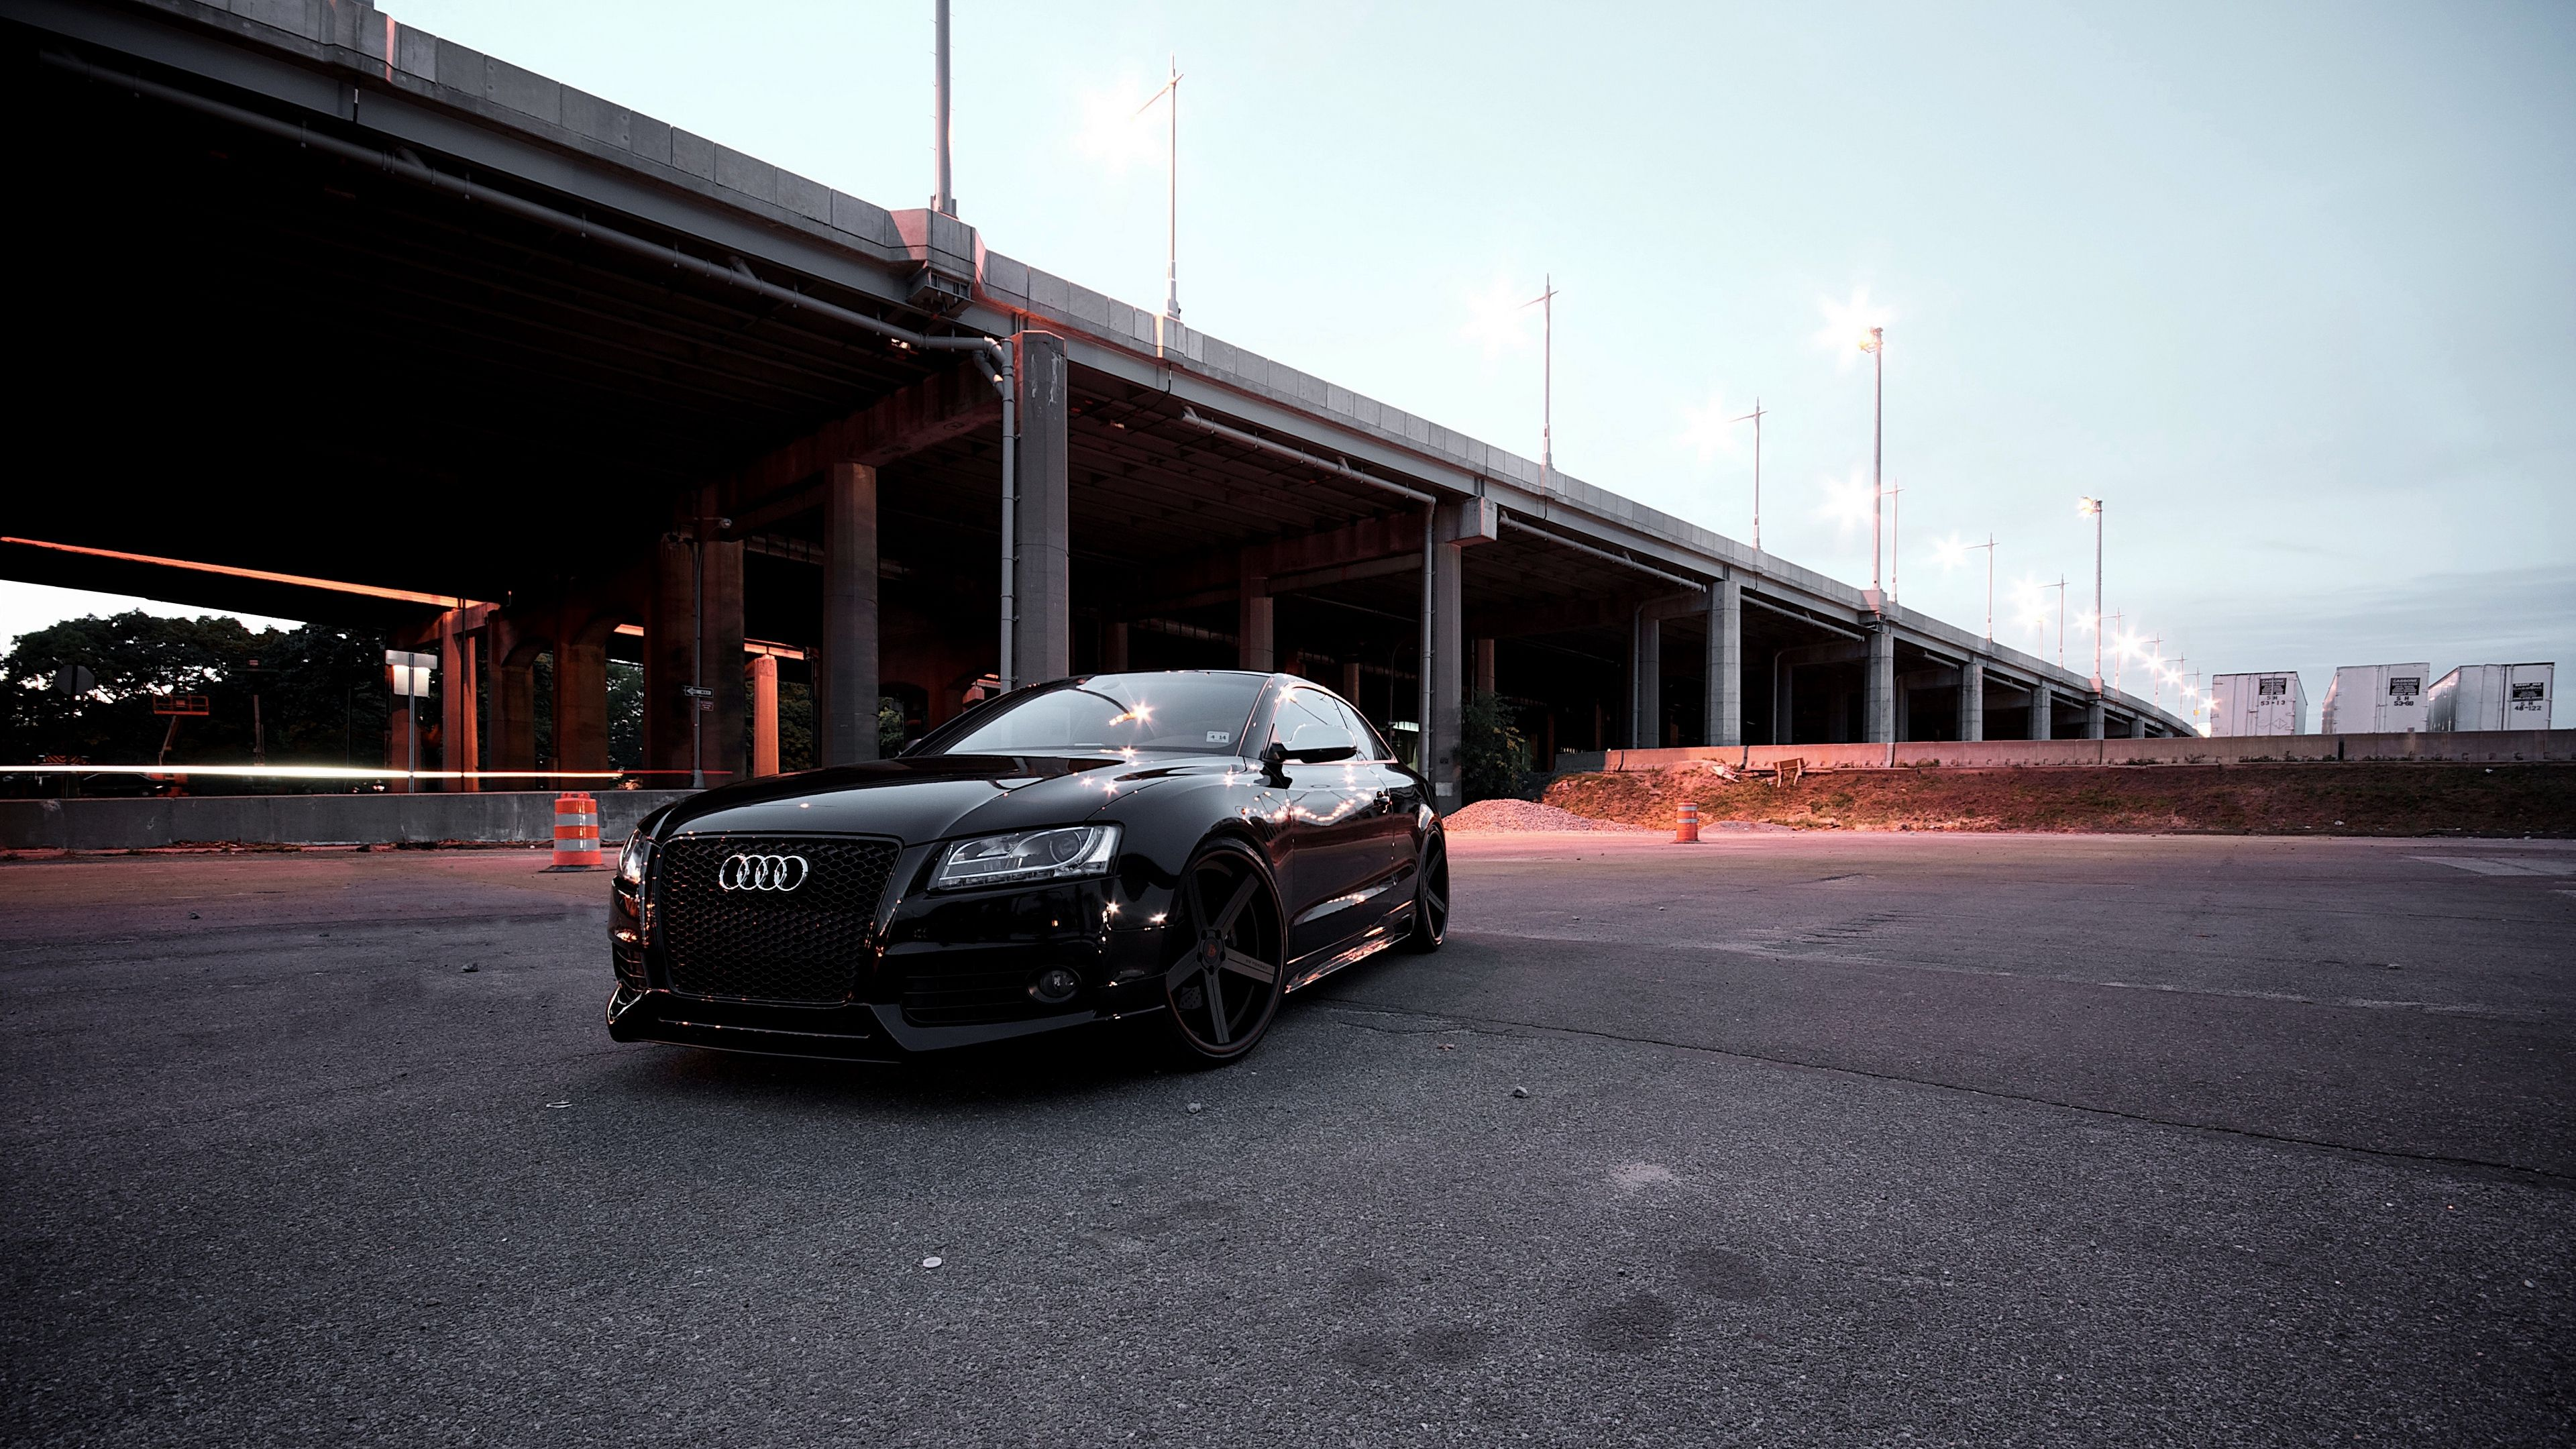 Download wallpapers 3840x2160 audi, rs5, tuning 4k uhd 16:9 hd backgrounds